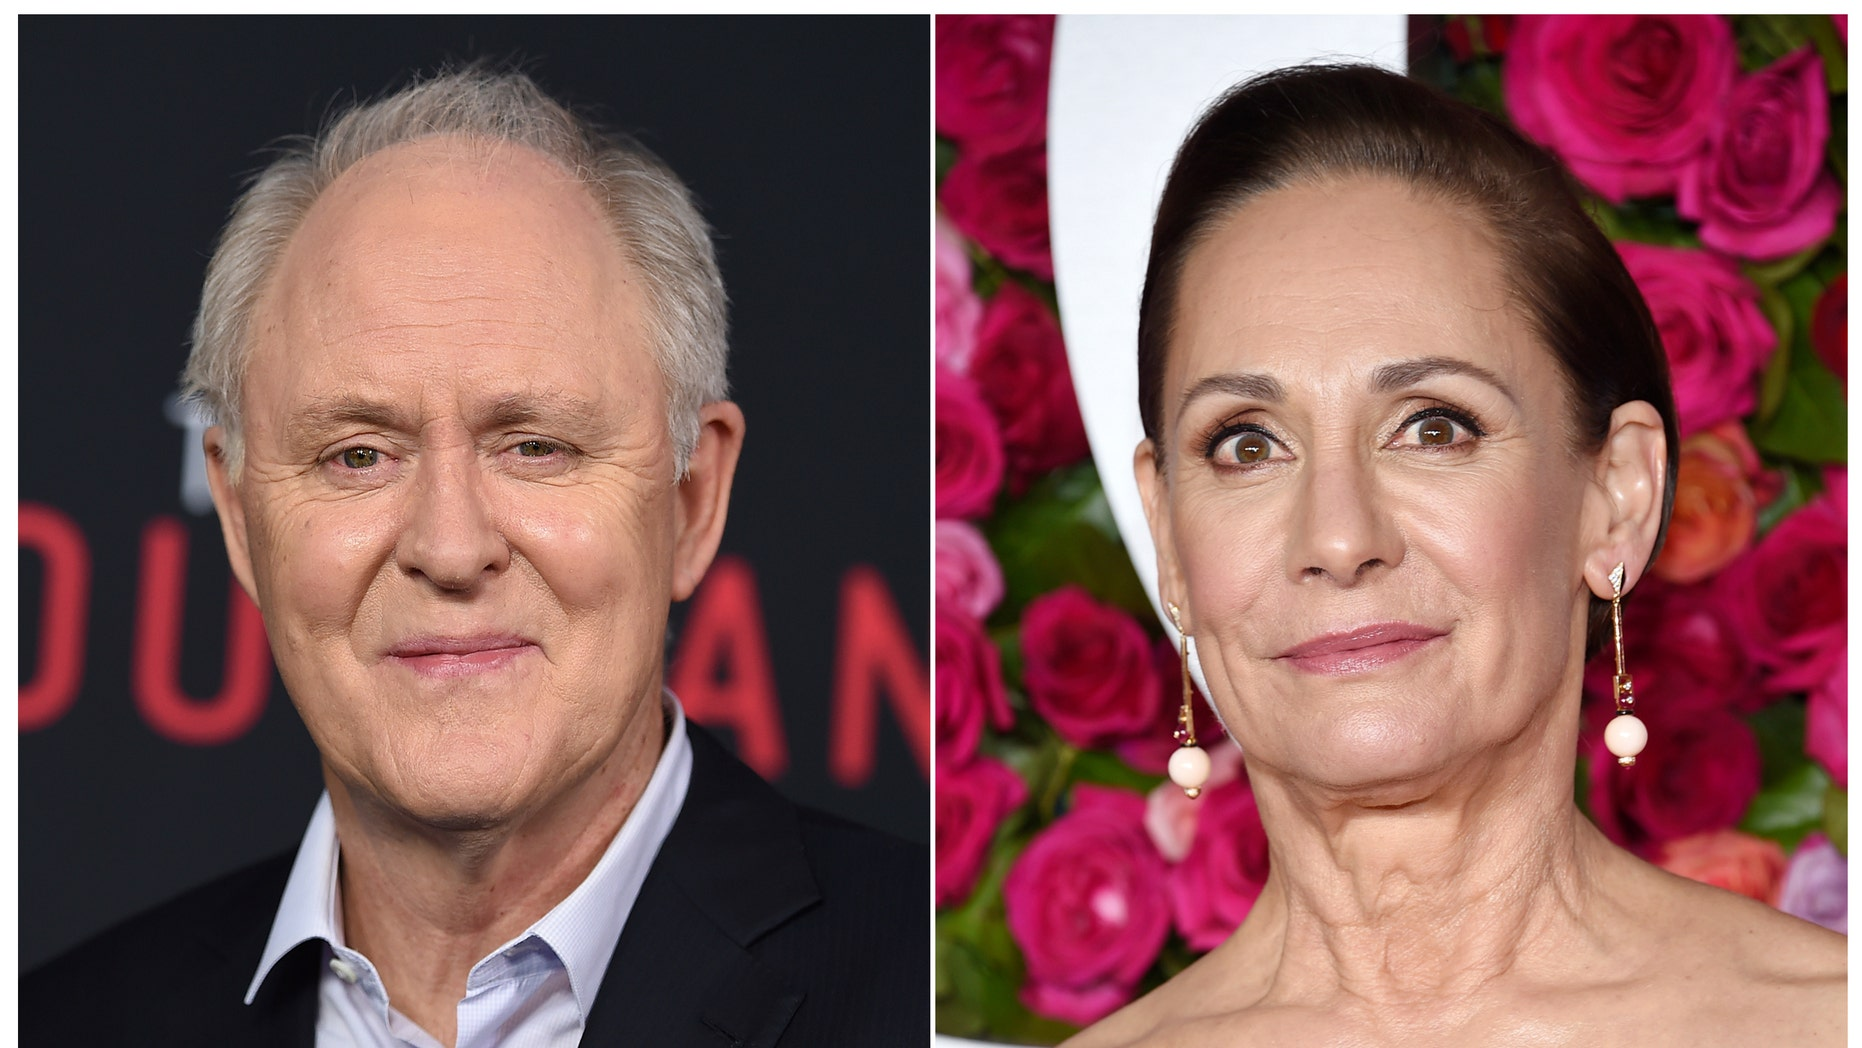 John Lithgow, left, and Laurie Metcalf will play the roles of former President Bill Clinton and Hillary Clinton in a new Broadway play.